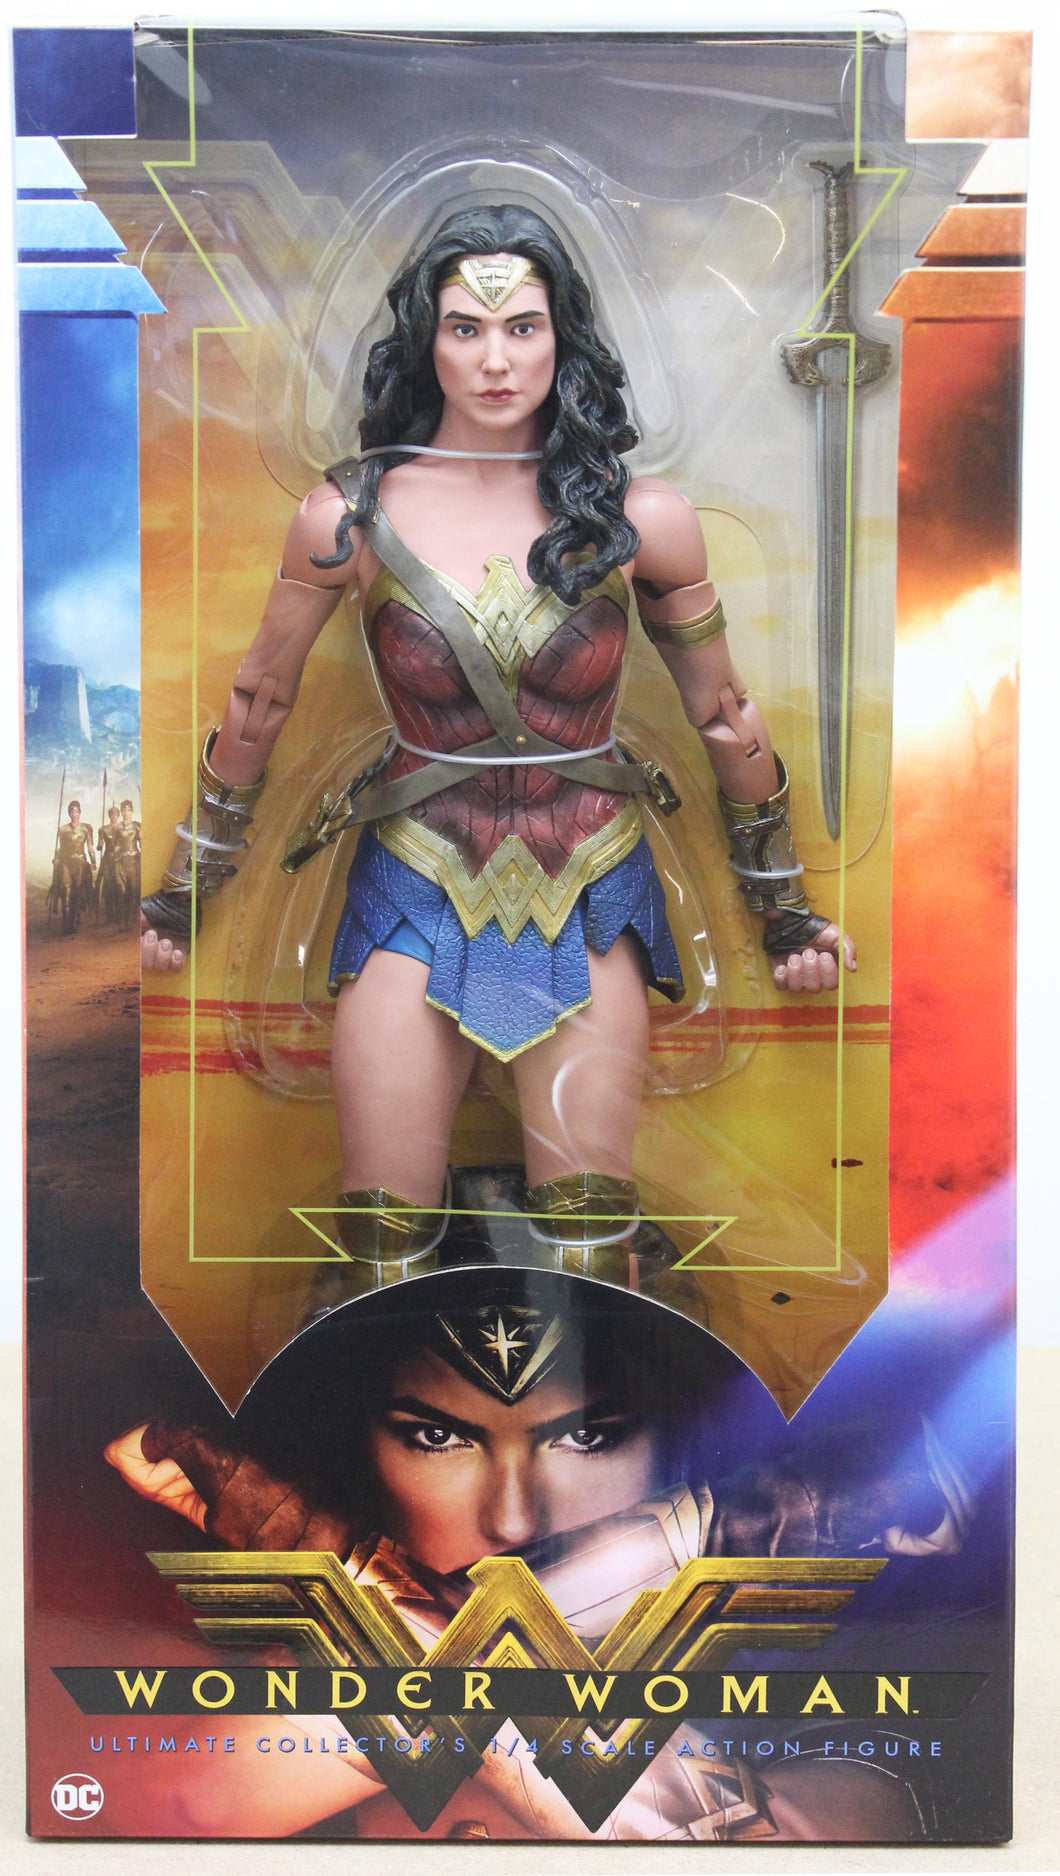 Wonder Woman Ultimate Collector's 1/4 Scale Action Figure